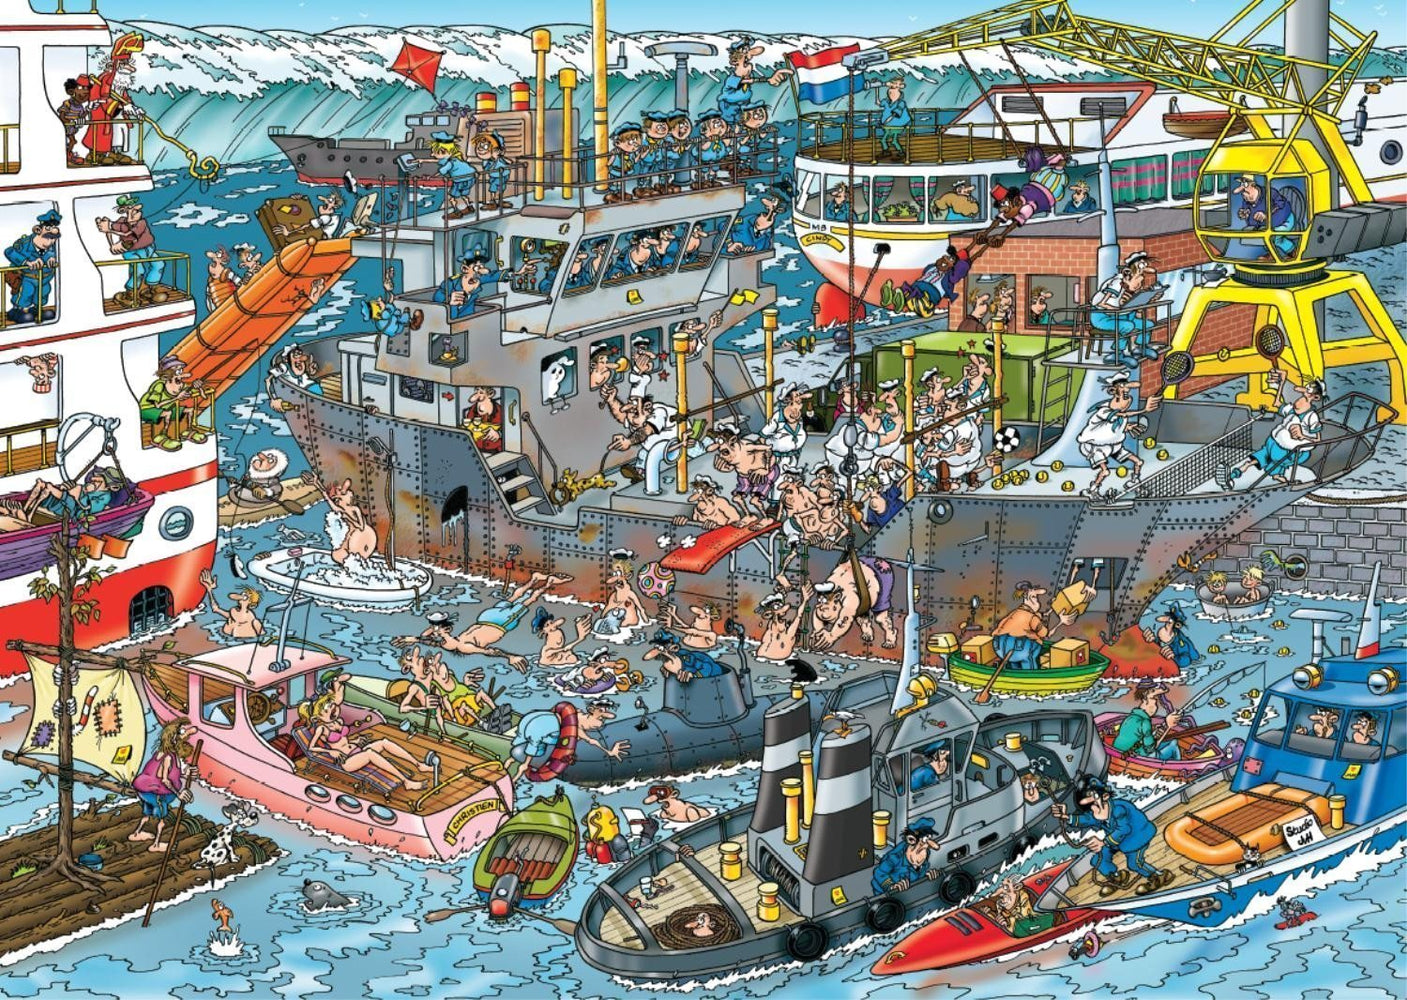 Jan van Haasteren Sea Port 500 Piece Jigsaw Puzzle - All Jigsaw Puzzles UK  - 1